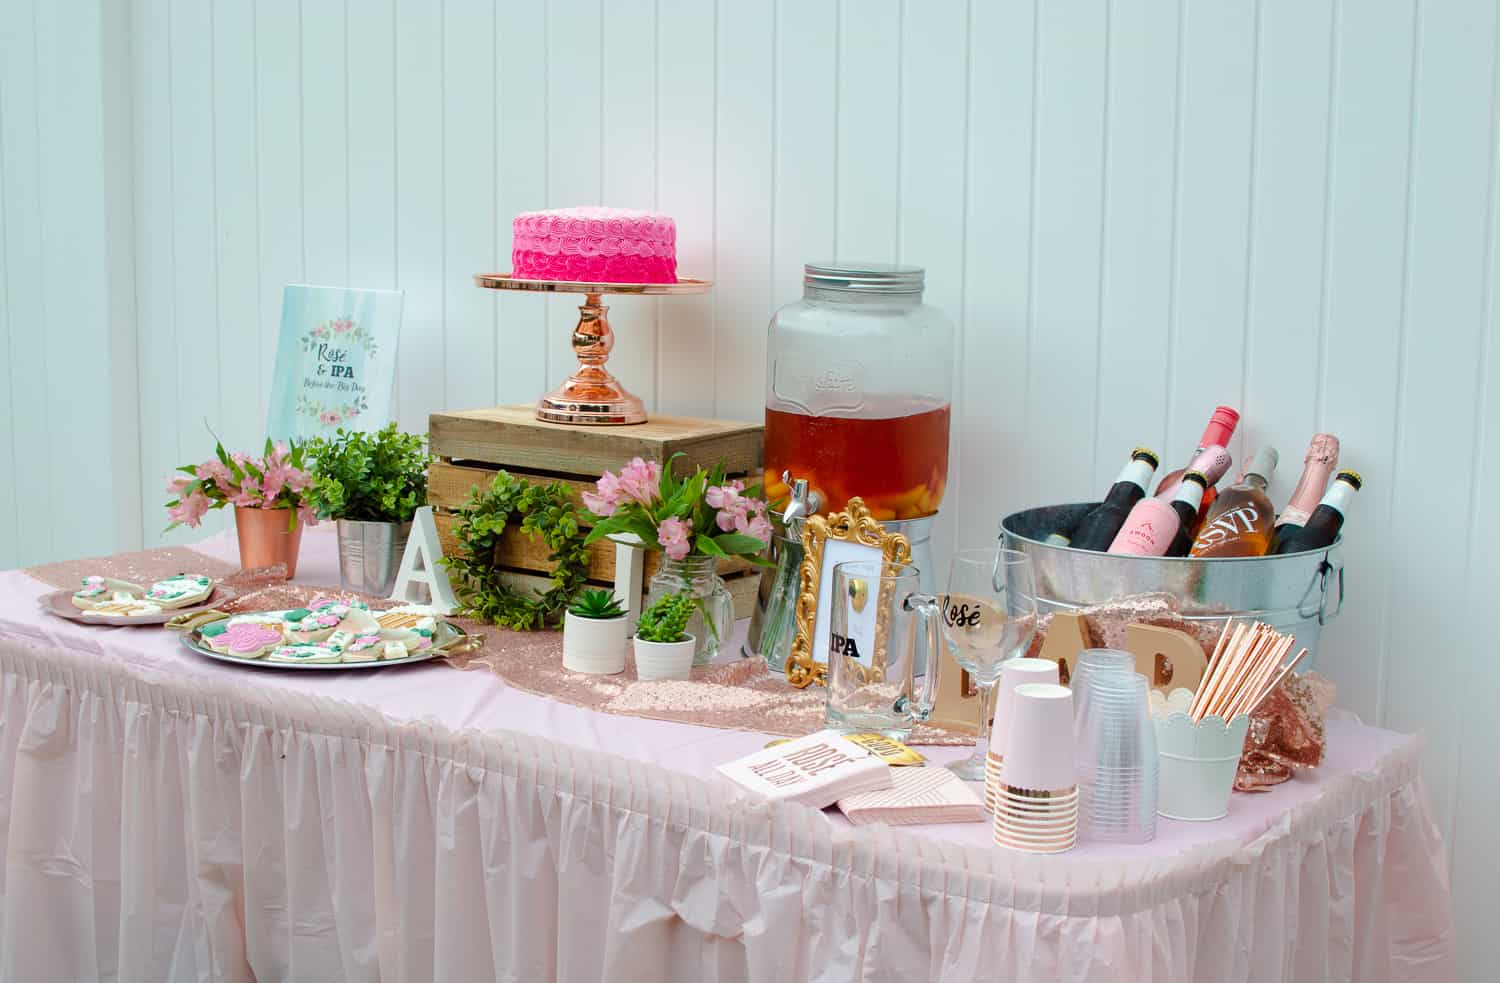 Rosé and IPA Wedding Shower Dessert and Drinks Table side view